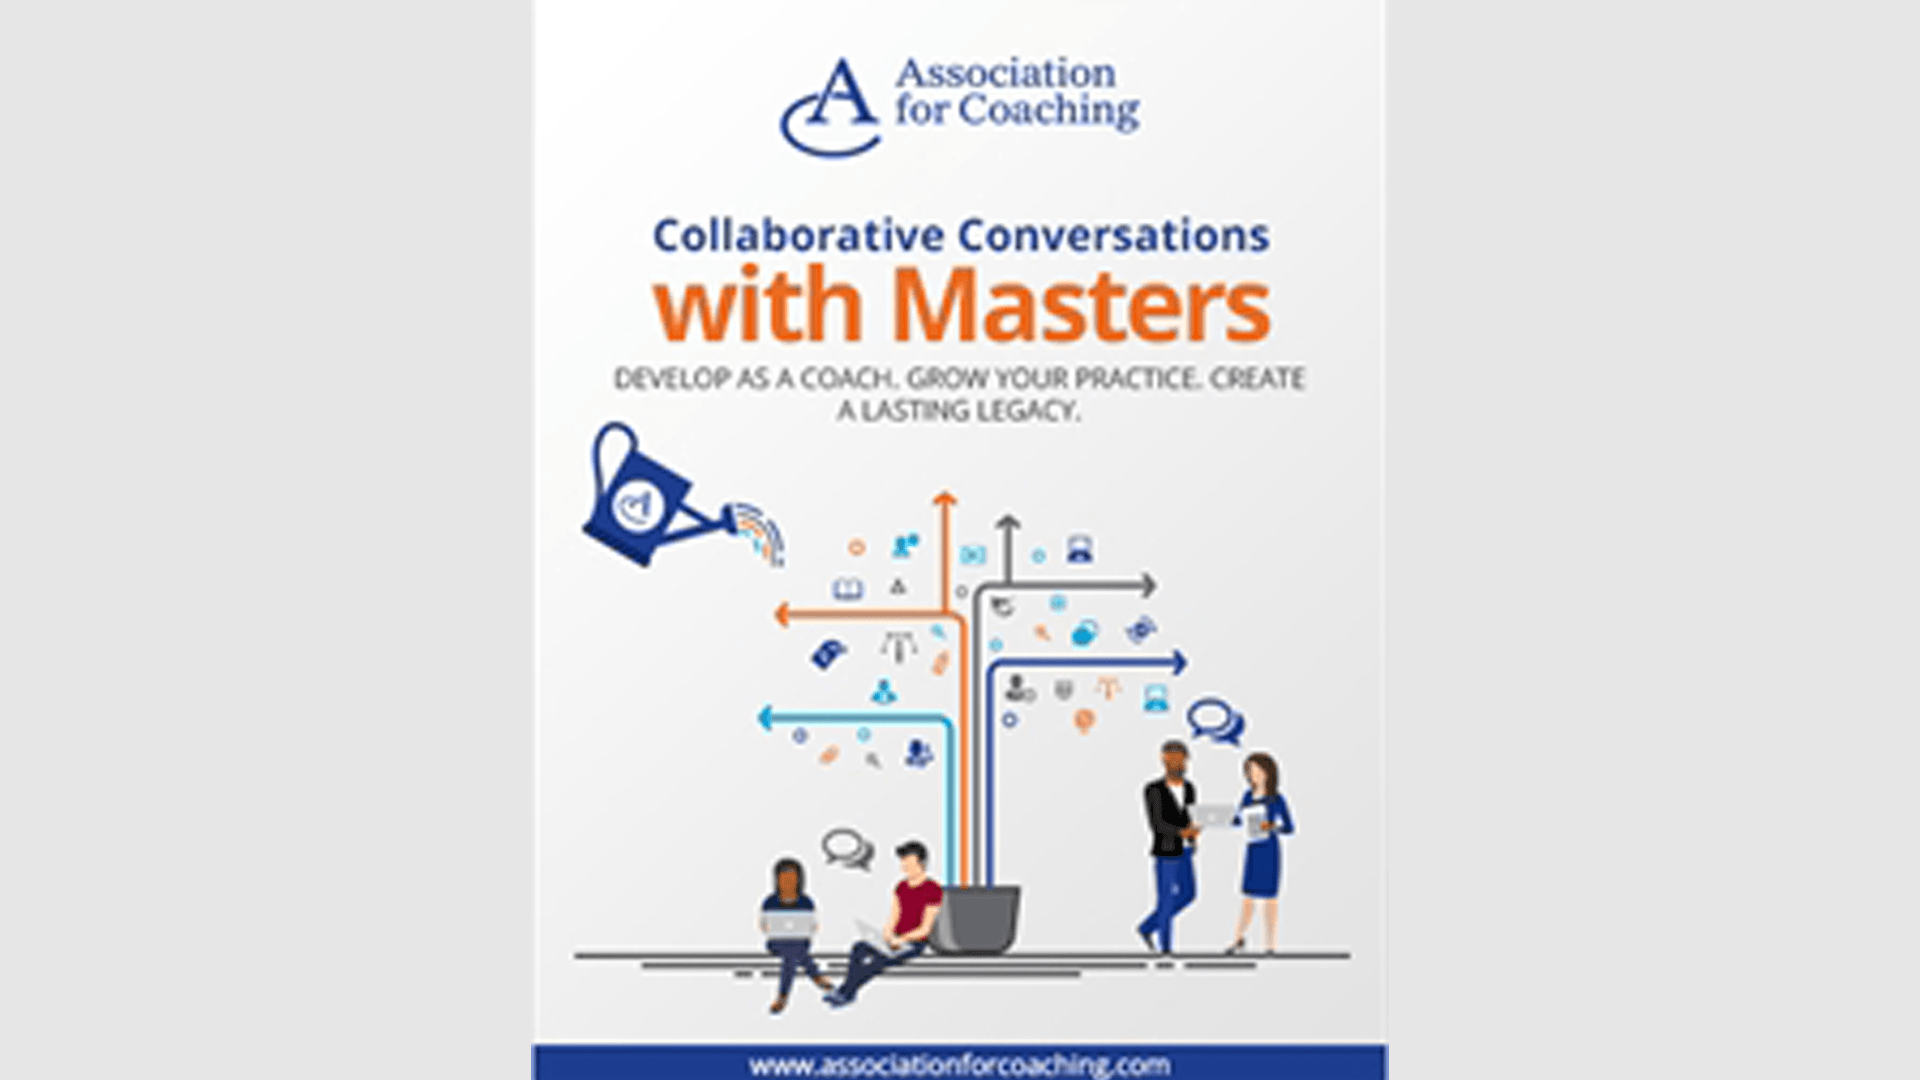 Learn more about the PLI through the Association of Coaching webinar with guest expert; Chief Executive of Real World Group, Juliette Alban-Metcalfe